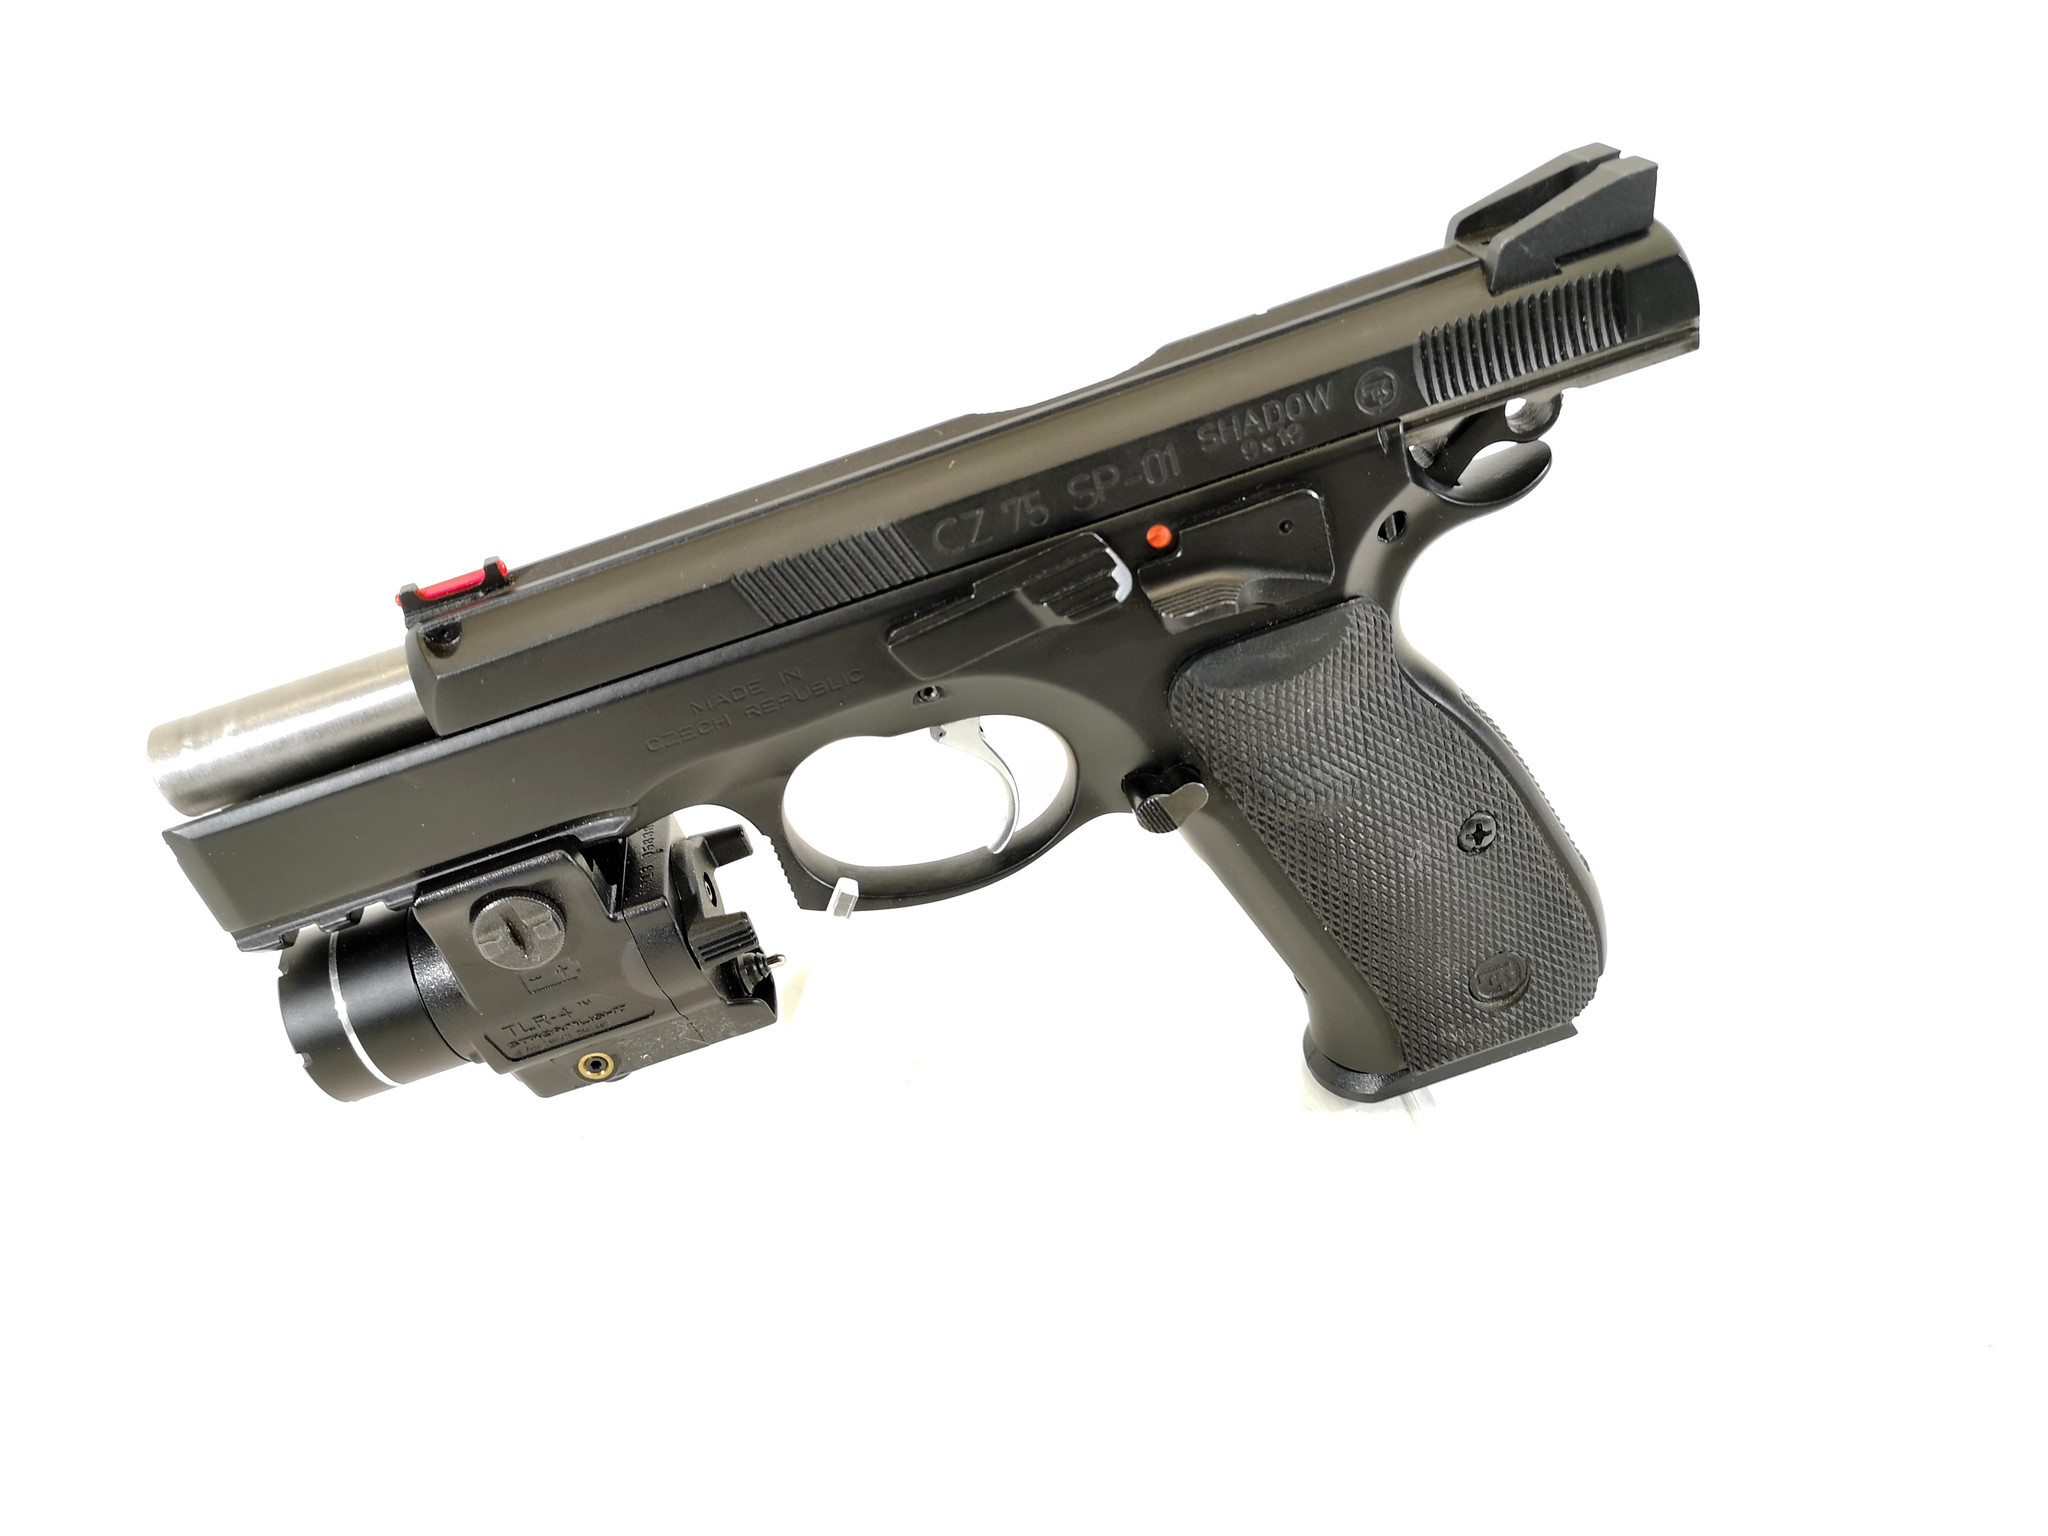 UHG-6475 USED CZ SP-01 Shadow 9mm w/ 2 Magazines and TLR-4 Flashlight